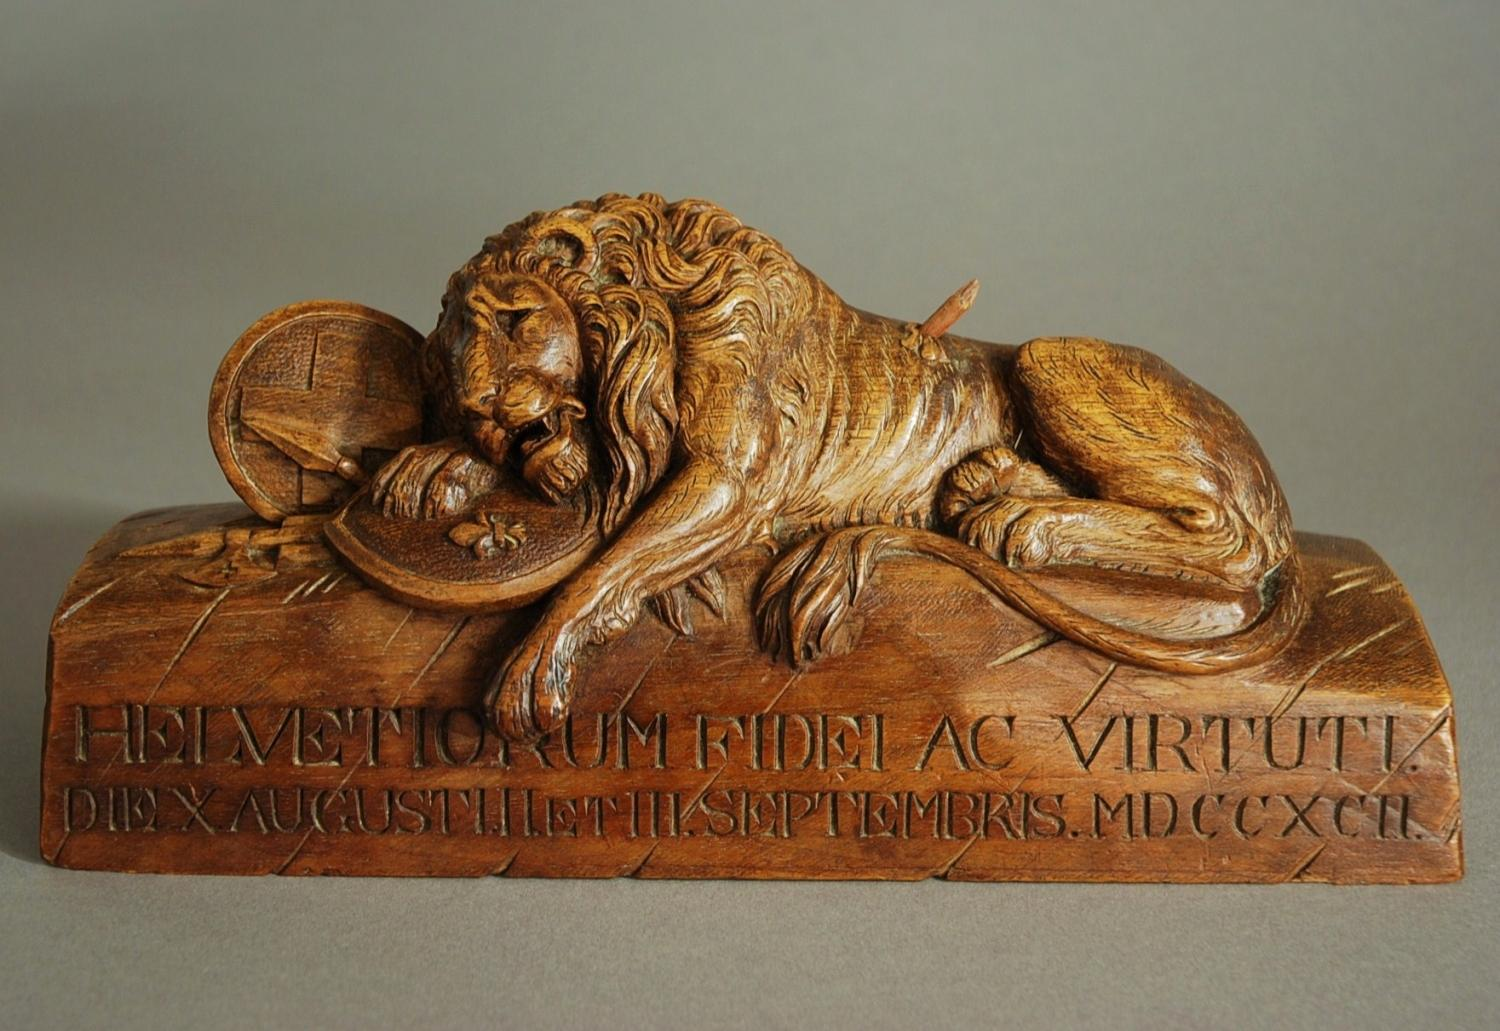 Late 19th century Black Forest wood carving